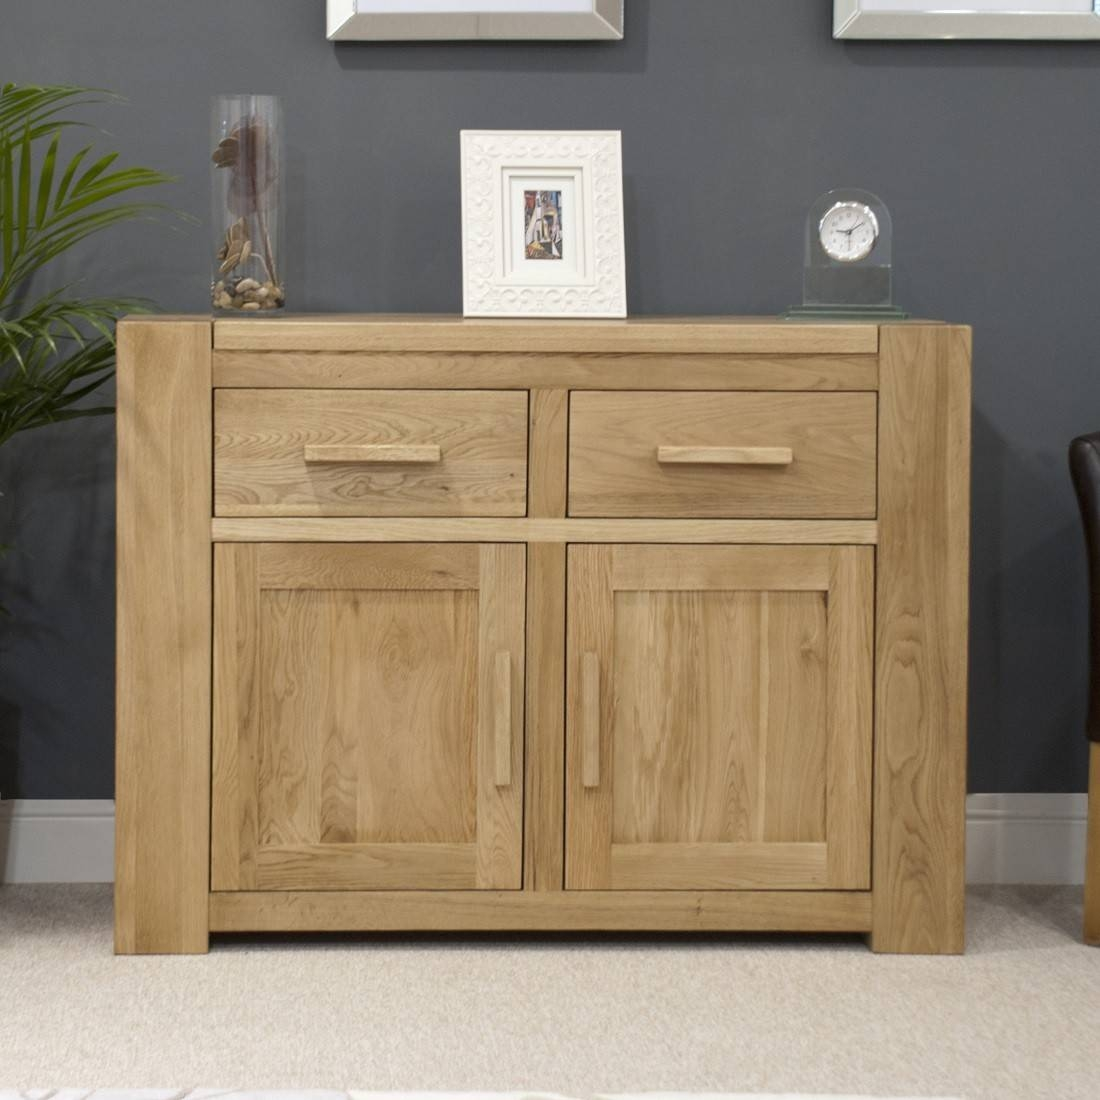 Trend Solid Oak Small 2 Door Sideboard | Oak Furniture Uk With Solid Oak Sideboards (View 15 of 15)